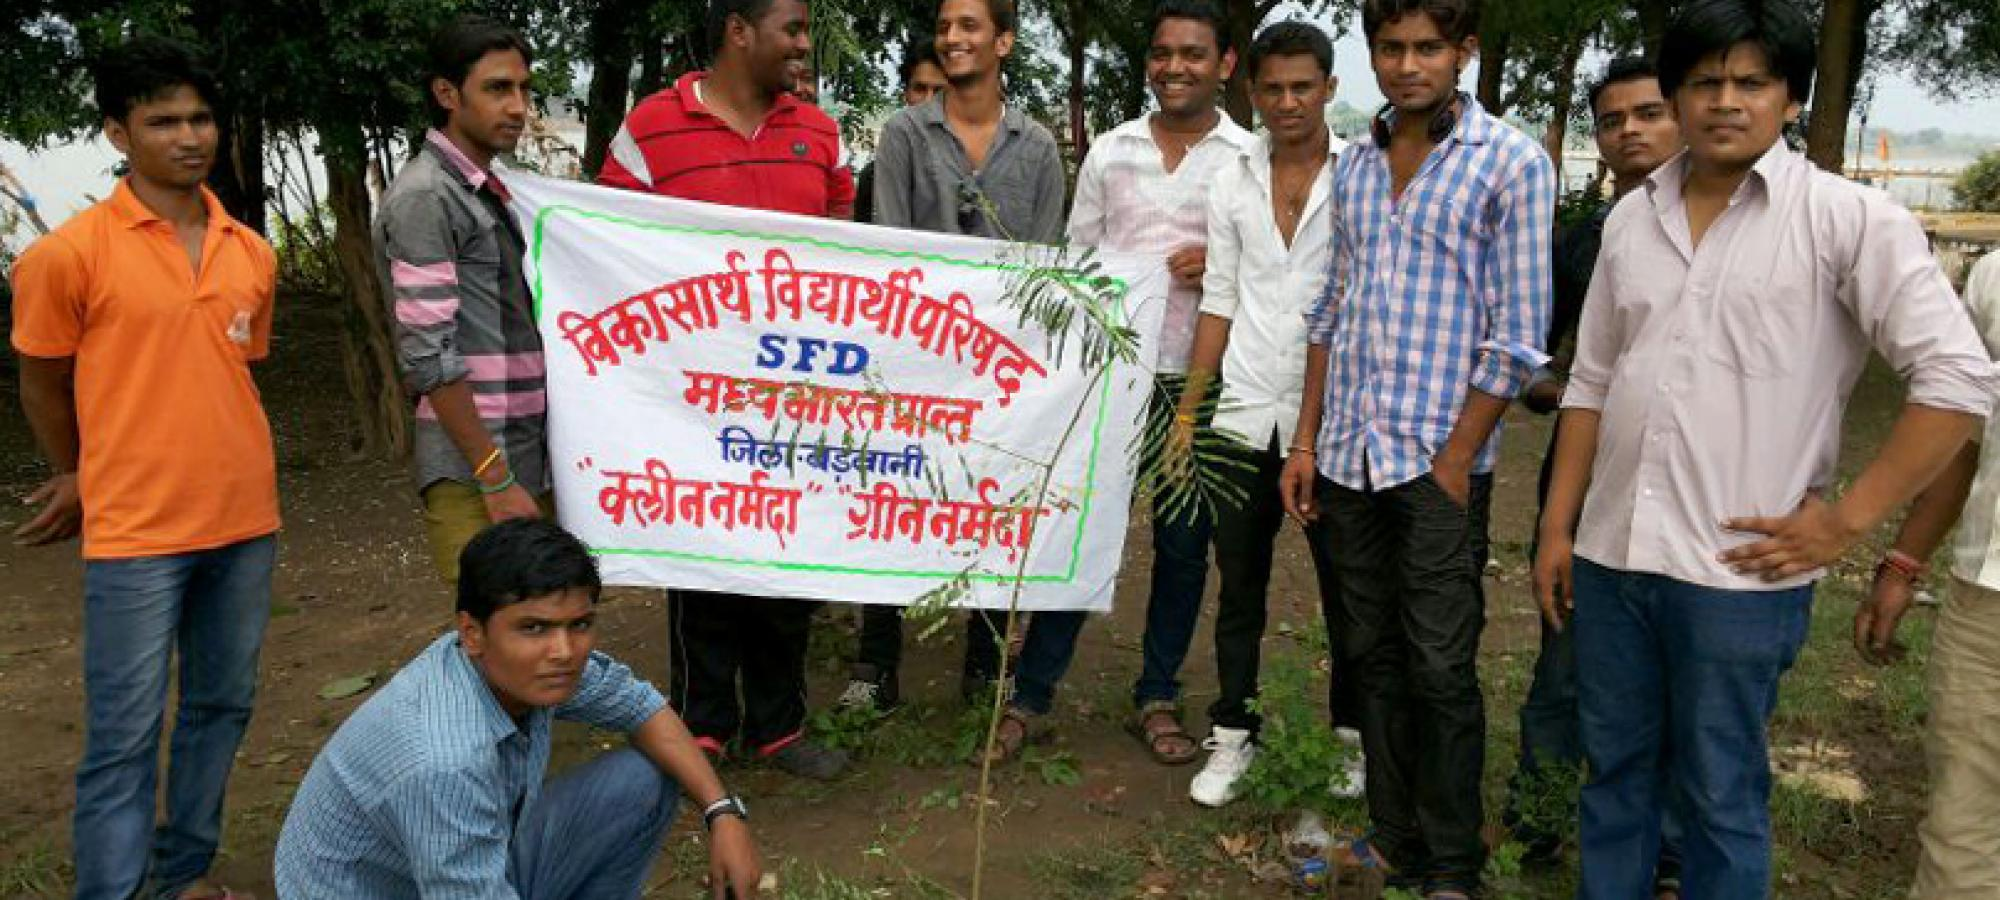 ABVP - Campus to Community